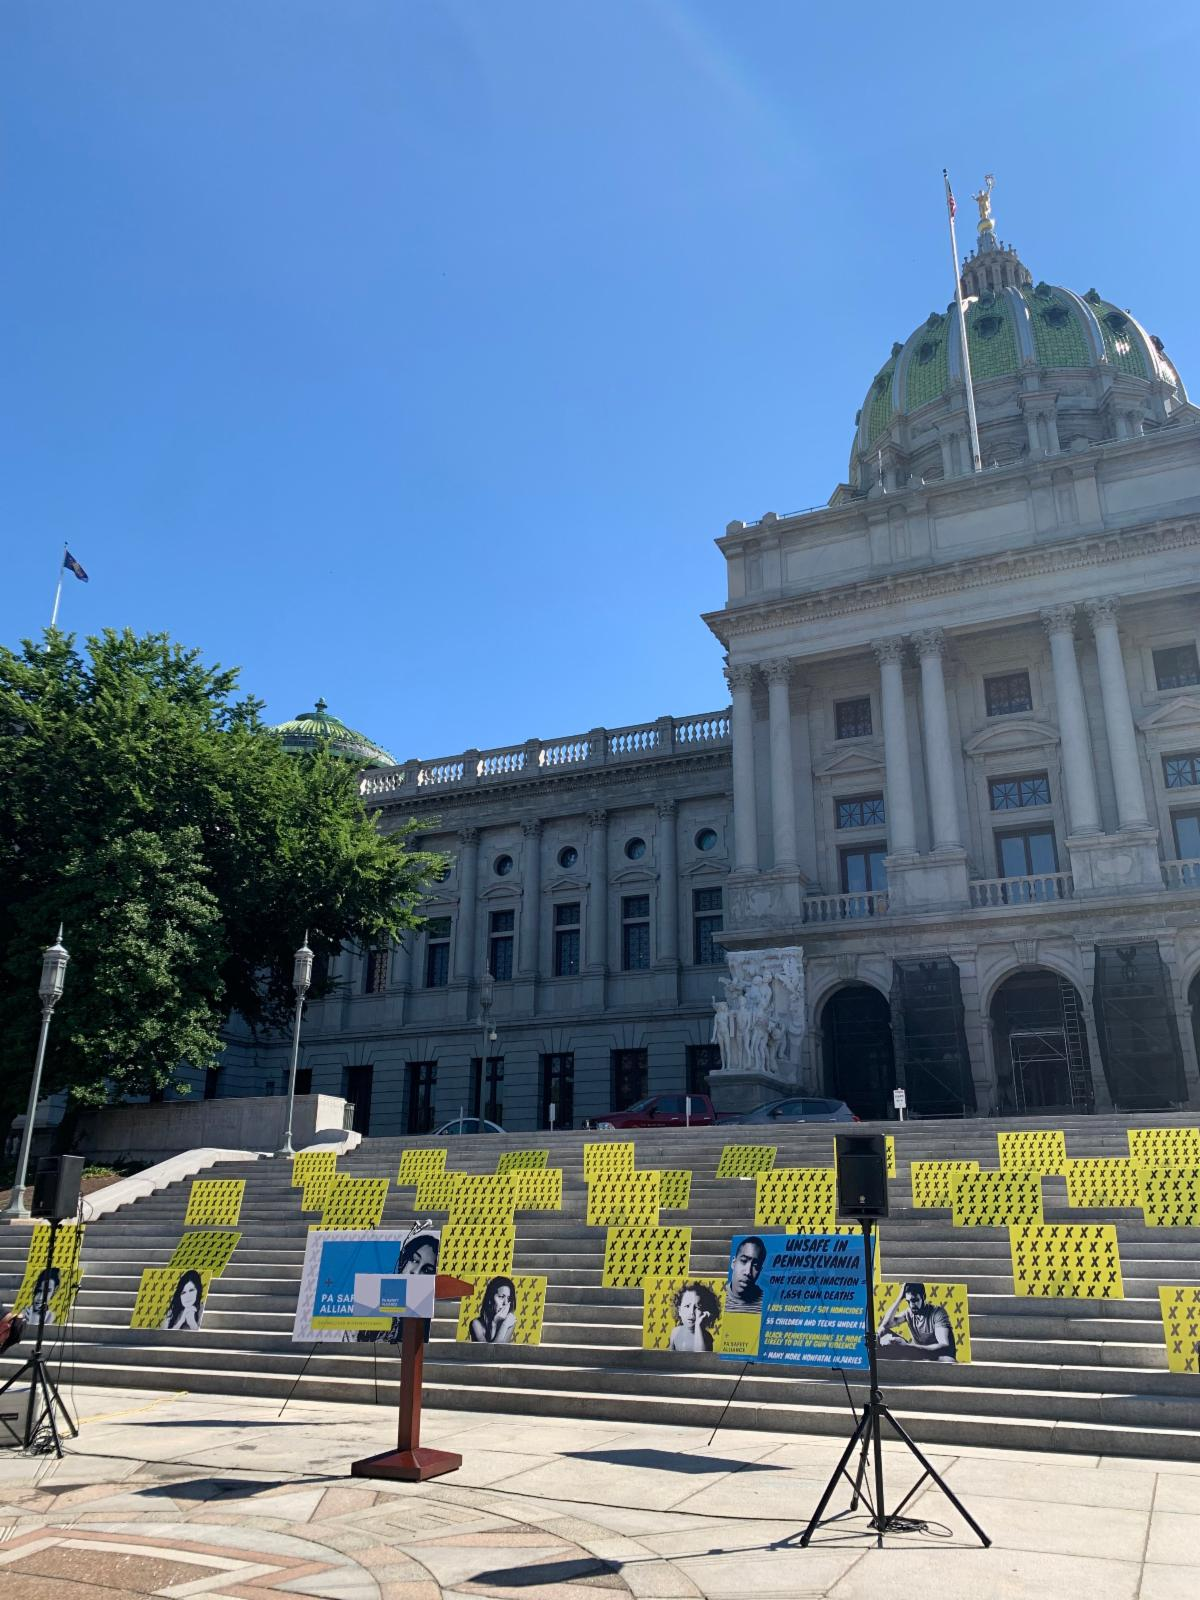 The launch of PA Safety Alliance in Harrisburg last summer. Each X represents a victim of gun violence